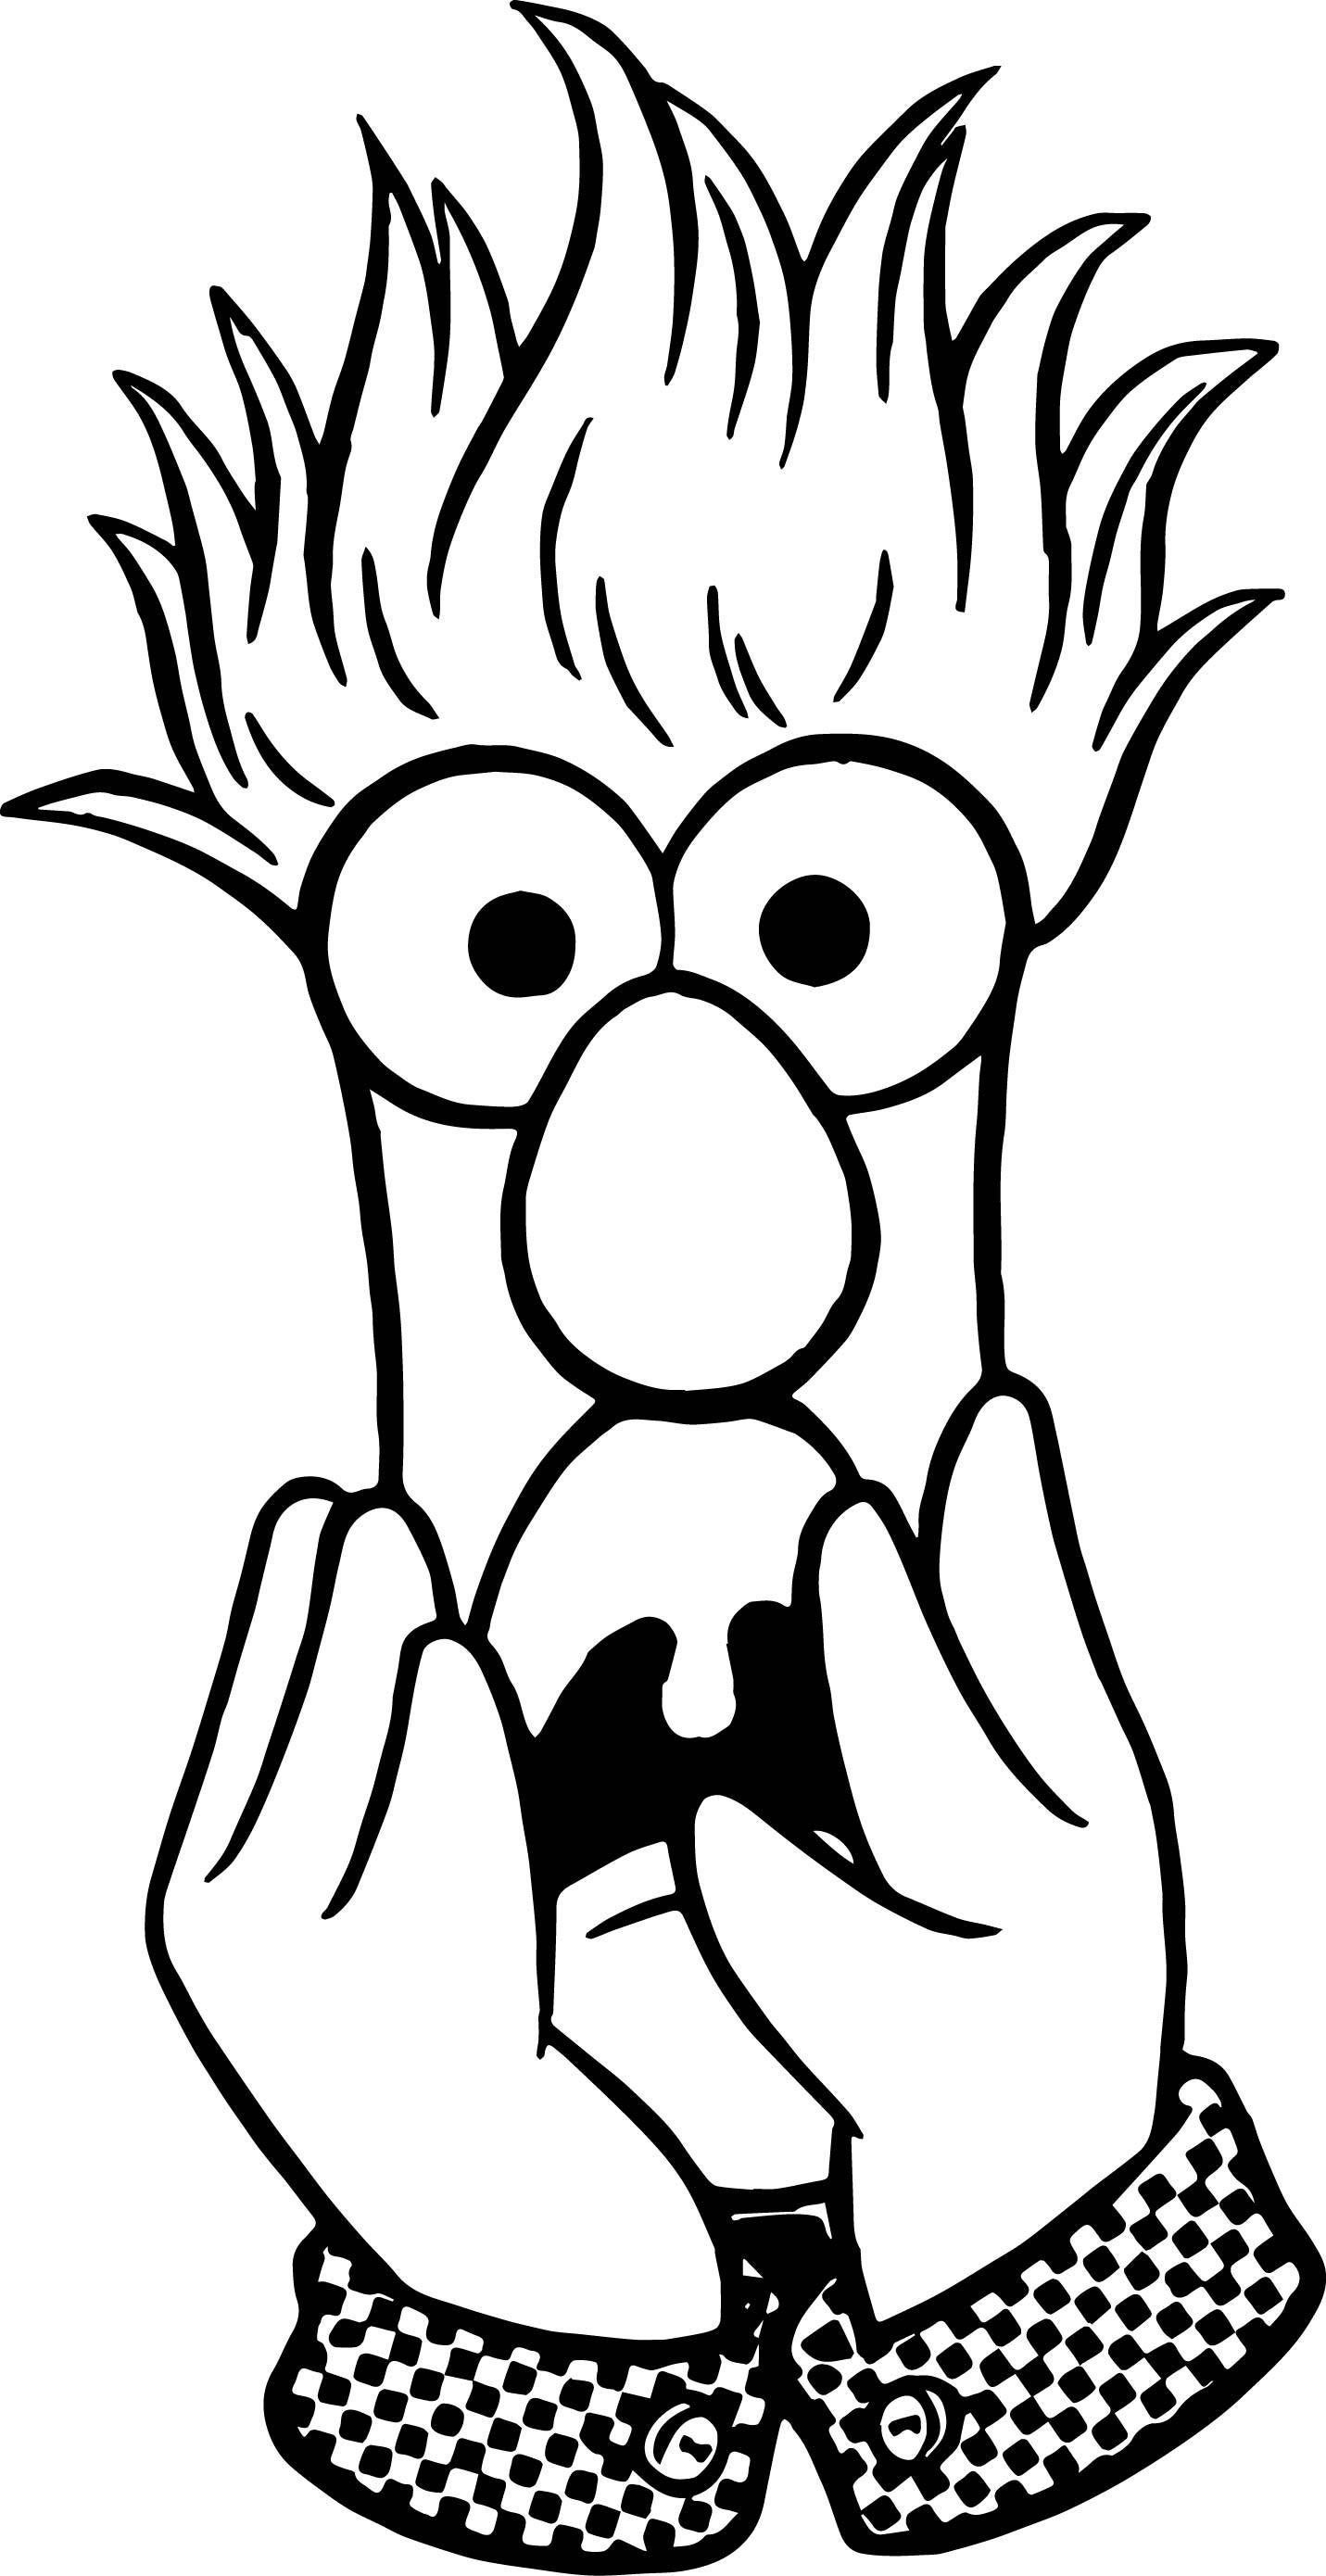 1431x2780 Muppets Coloring Page Coloring Page Princess Cinderella Images